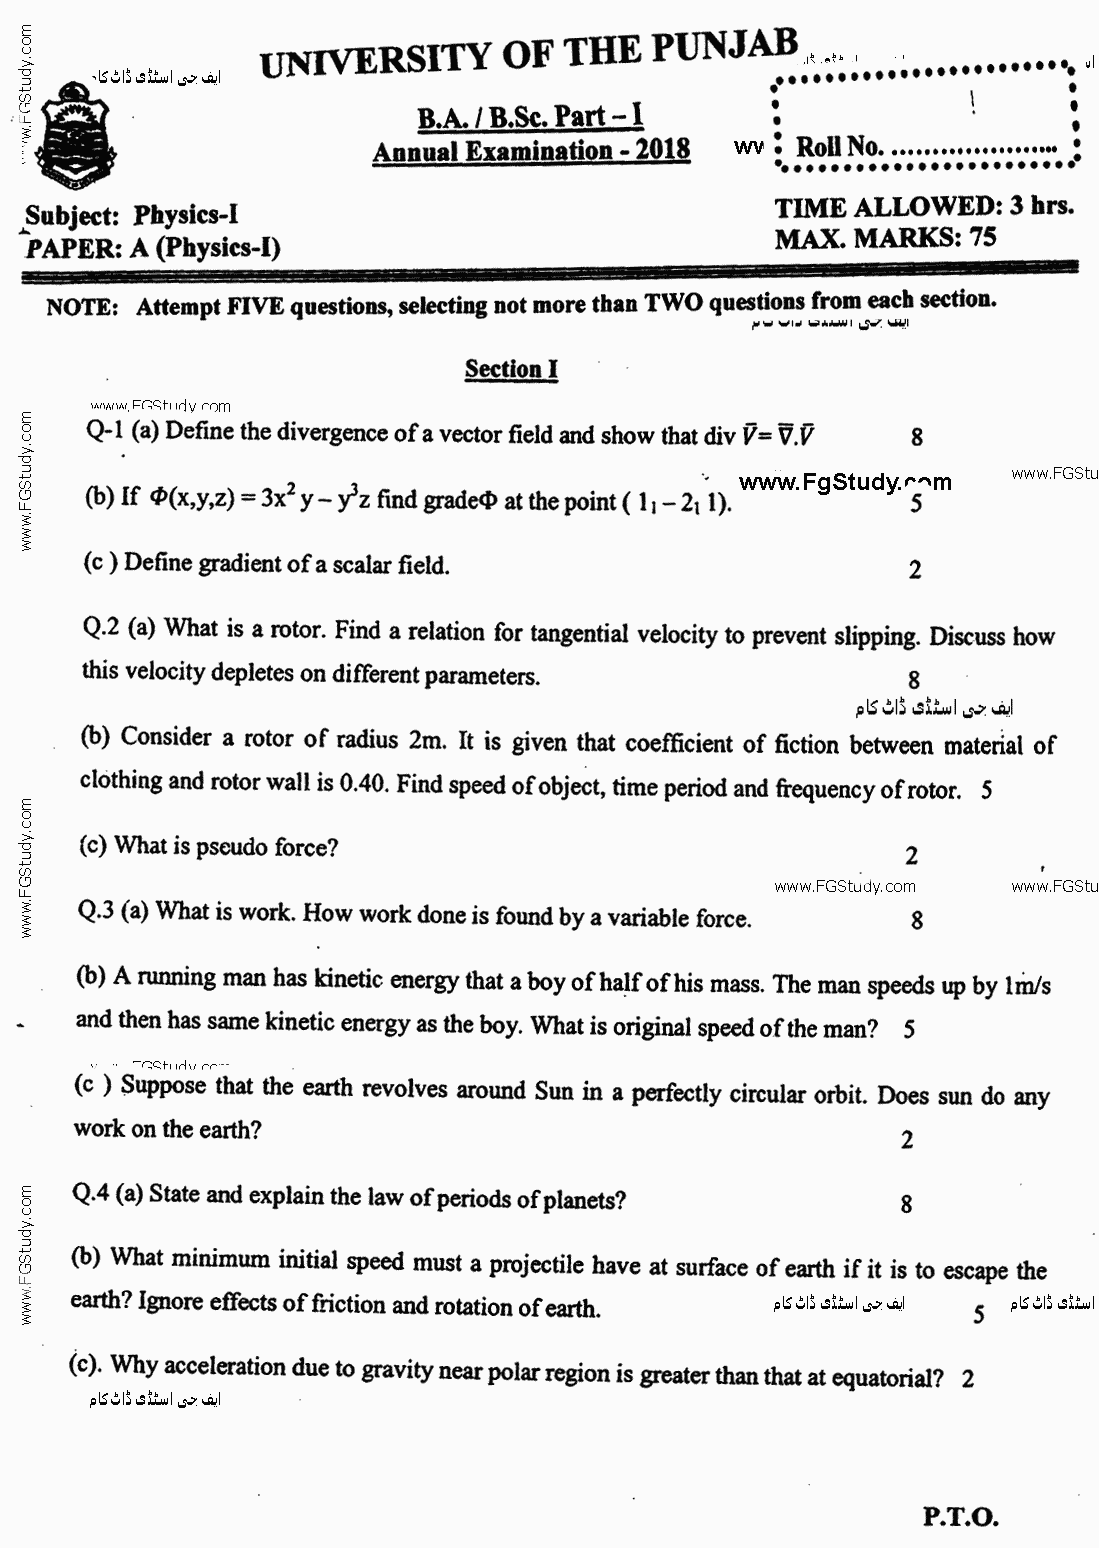 Physics Paper A BA Part 1 Past Papers 2018